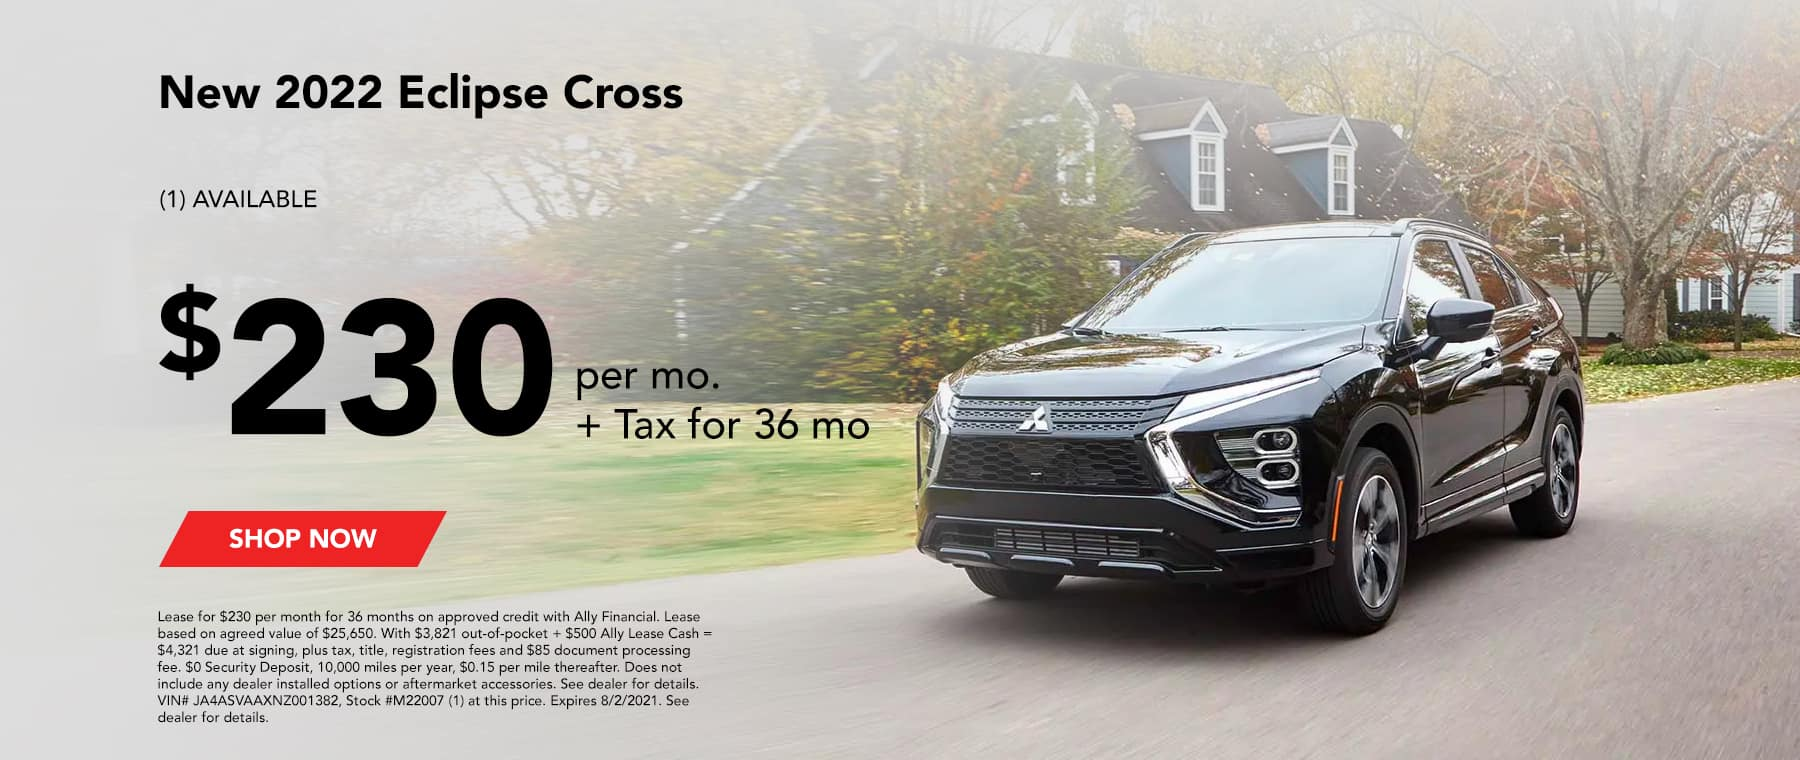 New 2022 ECLIPSE CROSS (1) AVAILABLE $230 per mo. + Tax for 36 mo Lease